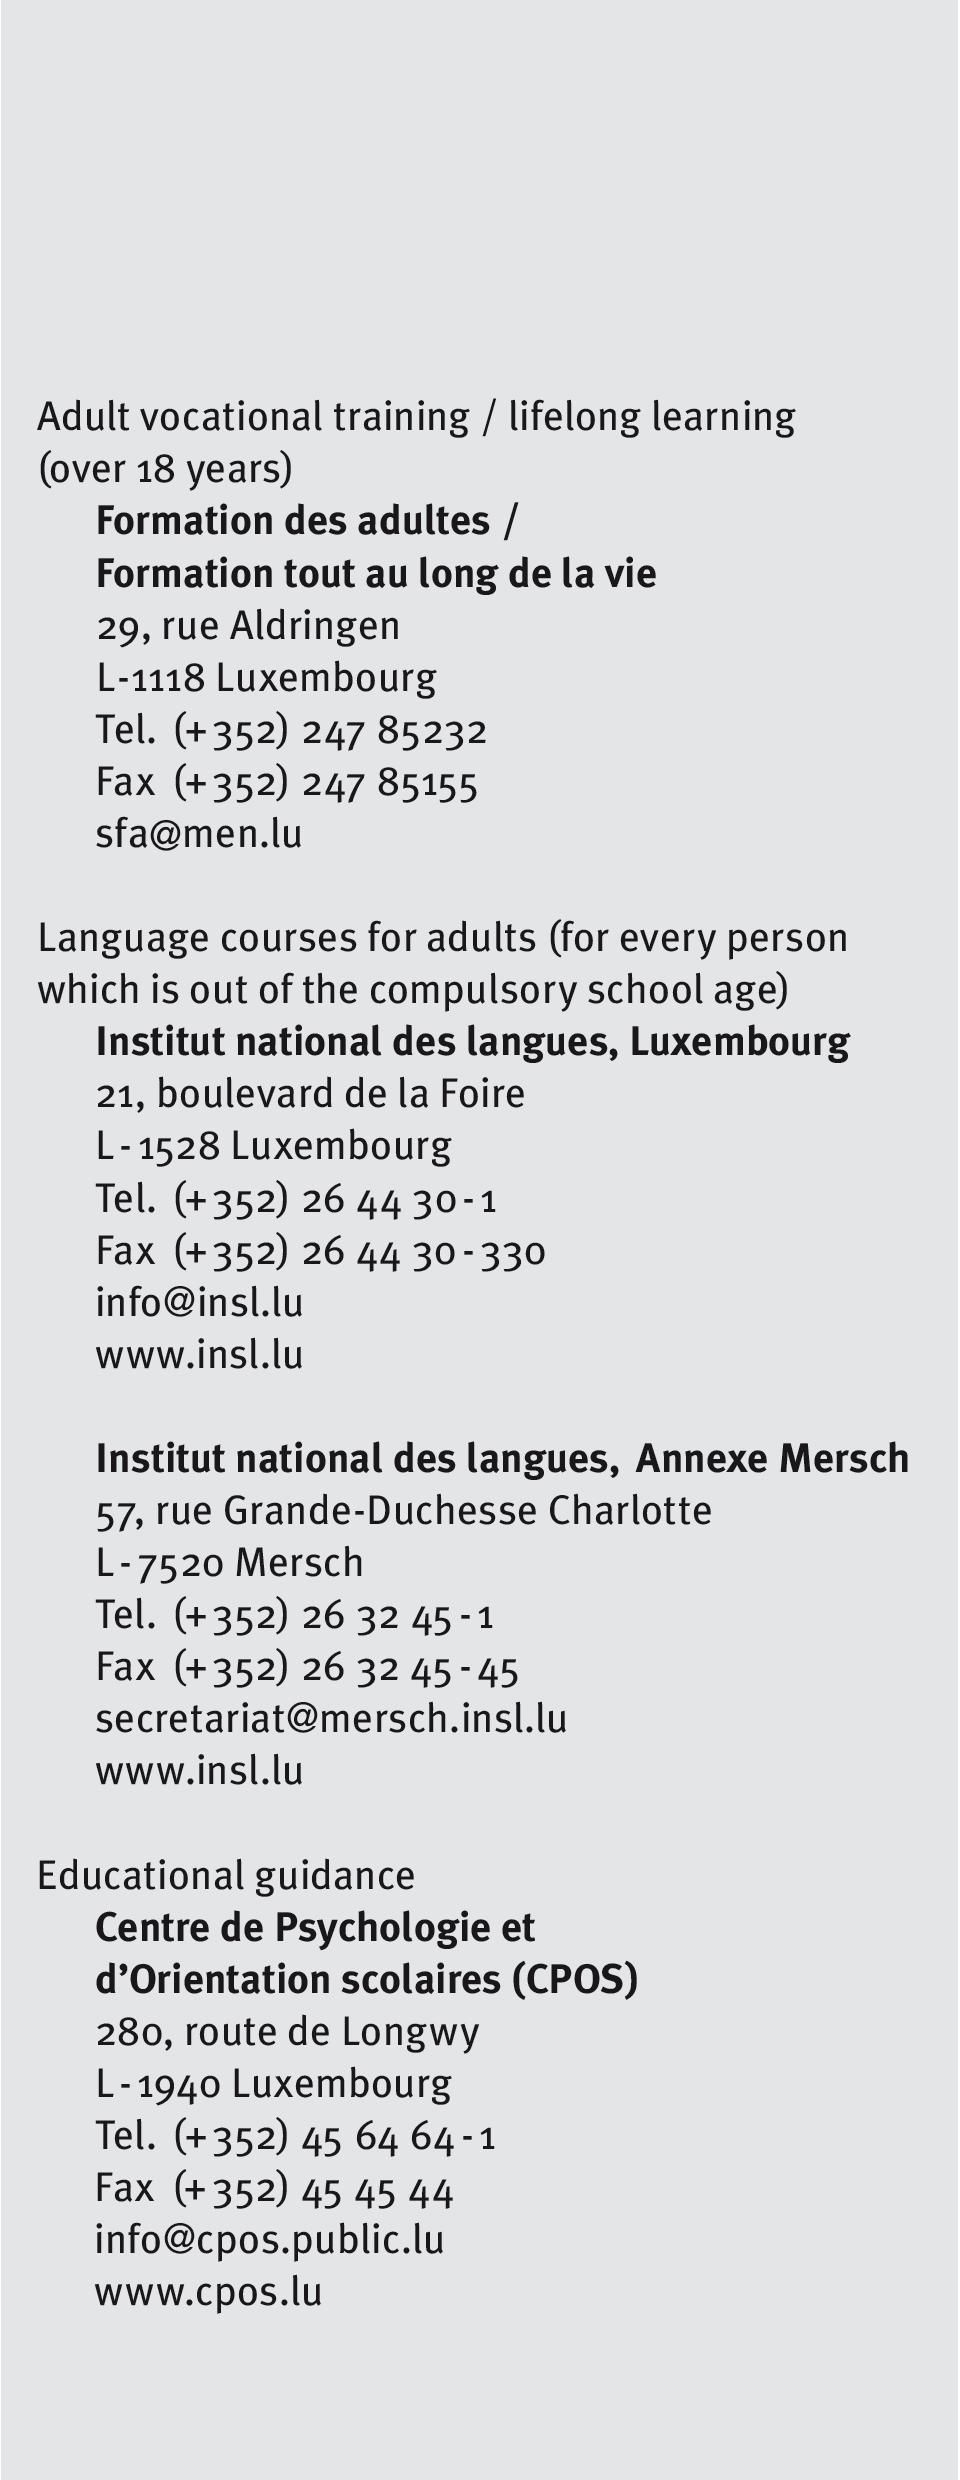 lu Language courses for adults (for every person which is out of the compulsory school age) Institut national des langues, Luxembourg 21, boulevard de la Foire L - 1528 Luxembourg Tel.